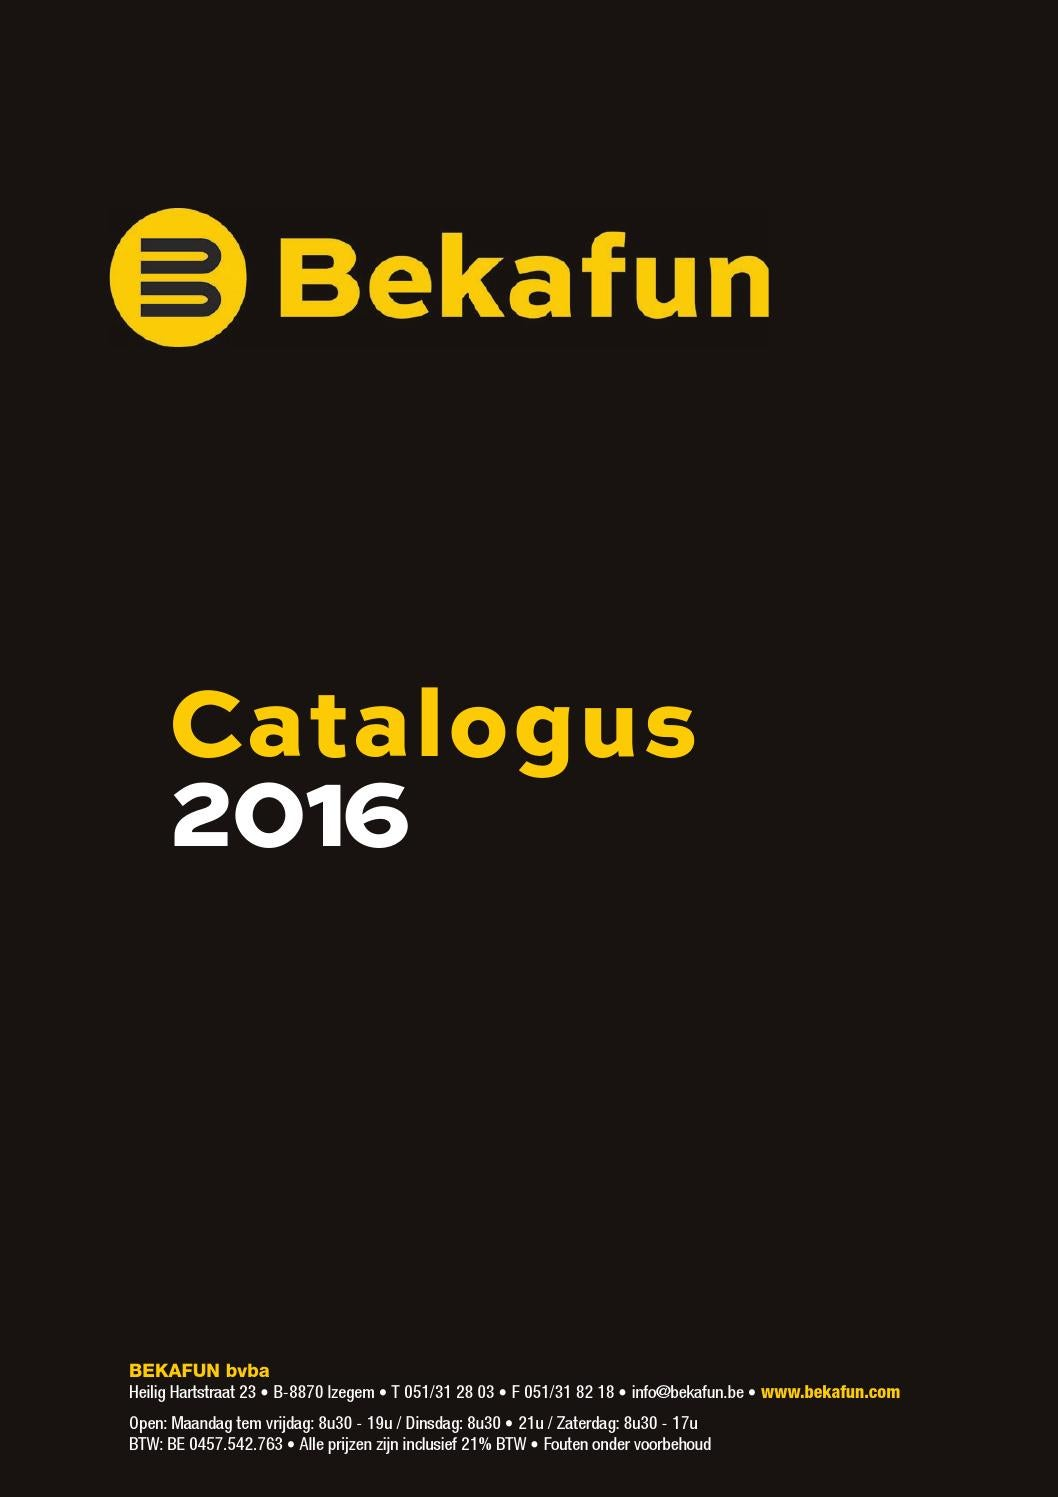 Multiplex 12mm Gamma Bekafun Catalogus 2016 By Bvba Bekafun Issuu